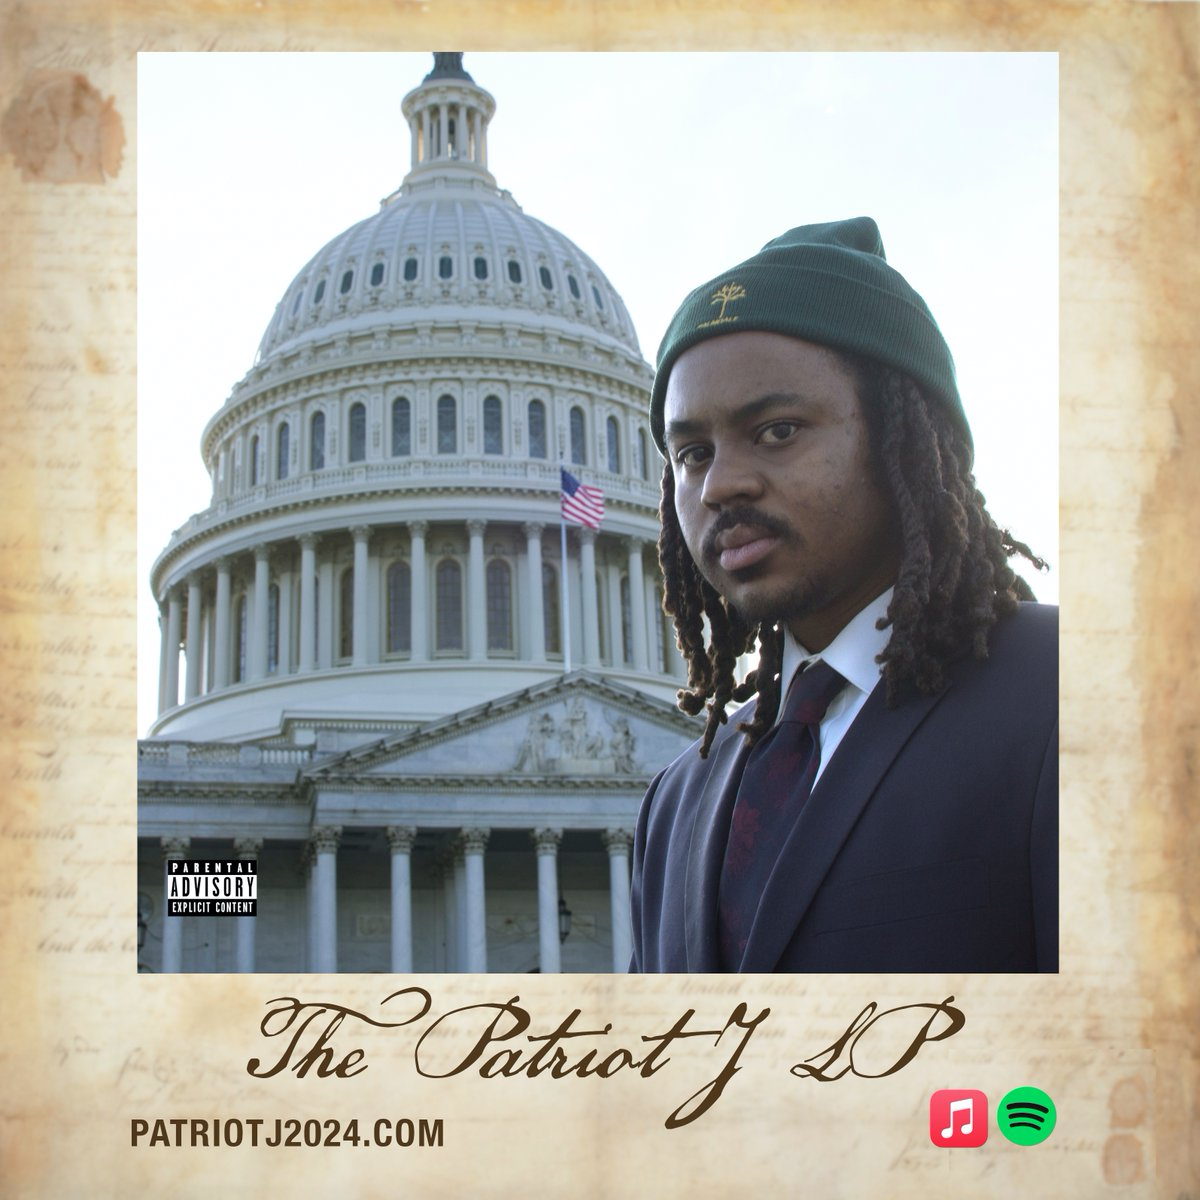 My debut album is finally here! The Patriot J LP 🇺🇸 Stream it: patriotj2024.com/PJLP Own it: coonluminati.com/PJLP Enjoy. 🙂